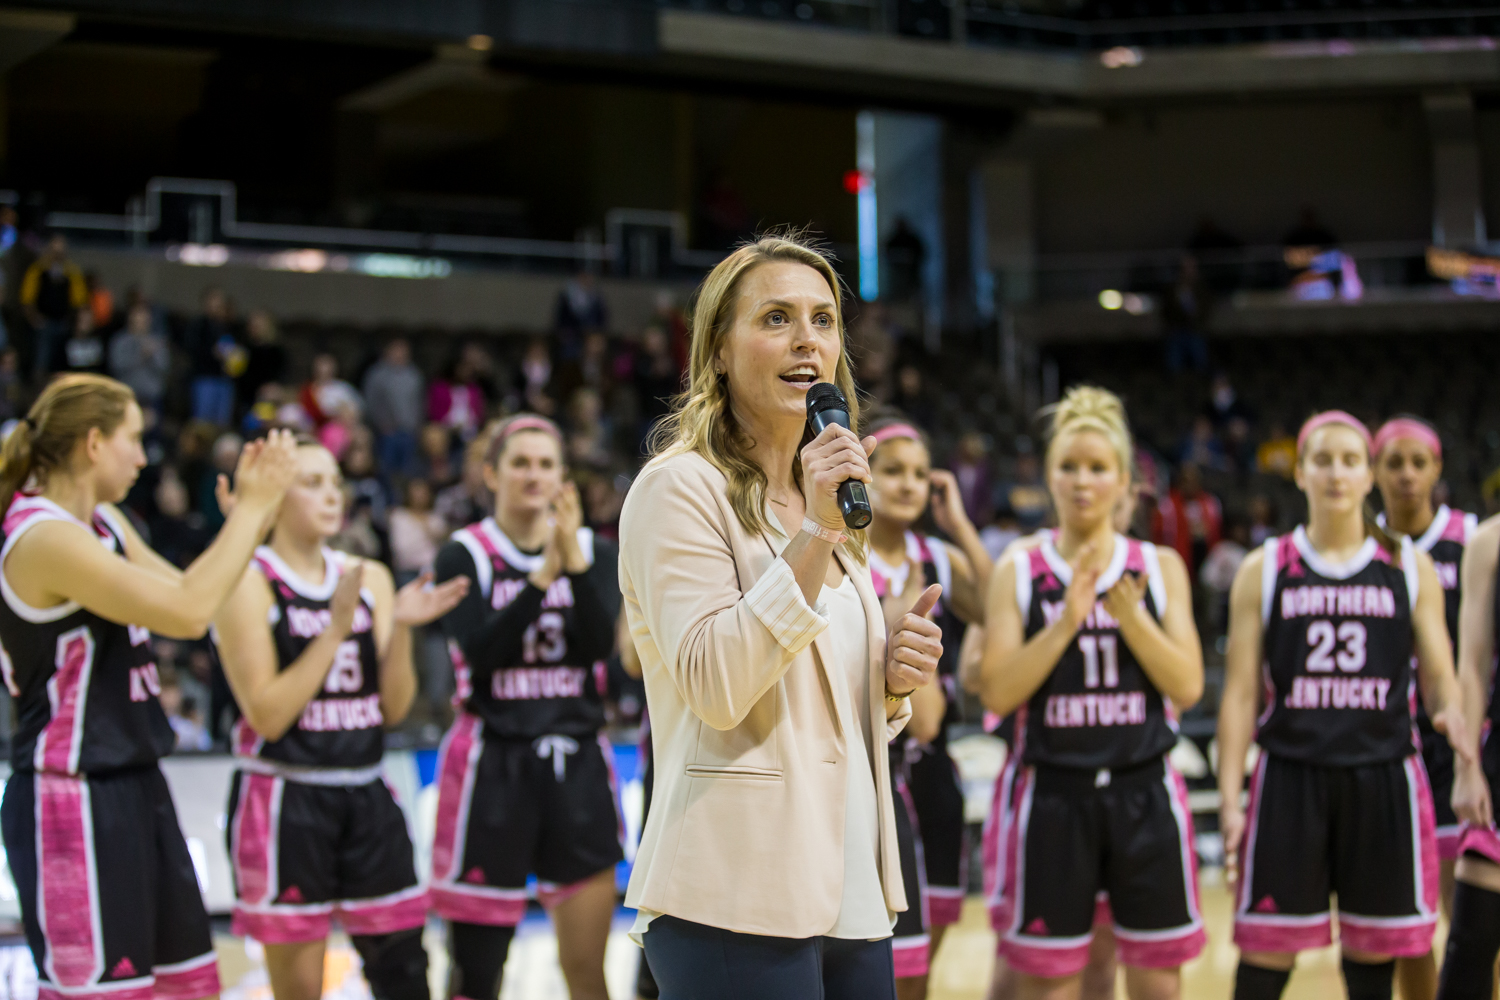 Head+Coach+Camryn+Whitaker+talks+to+fans+after+the+game+against+Cleveland+State.+She+thanked+fans+for+attending+and+for+their+support+all+season.